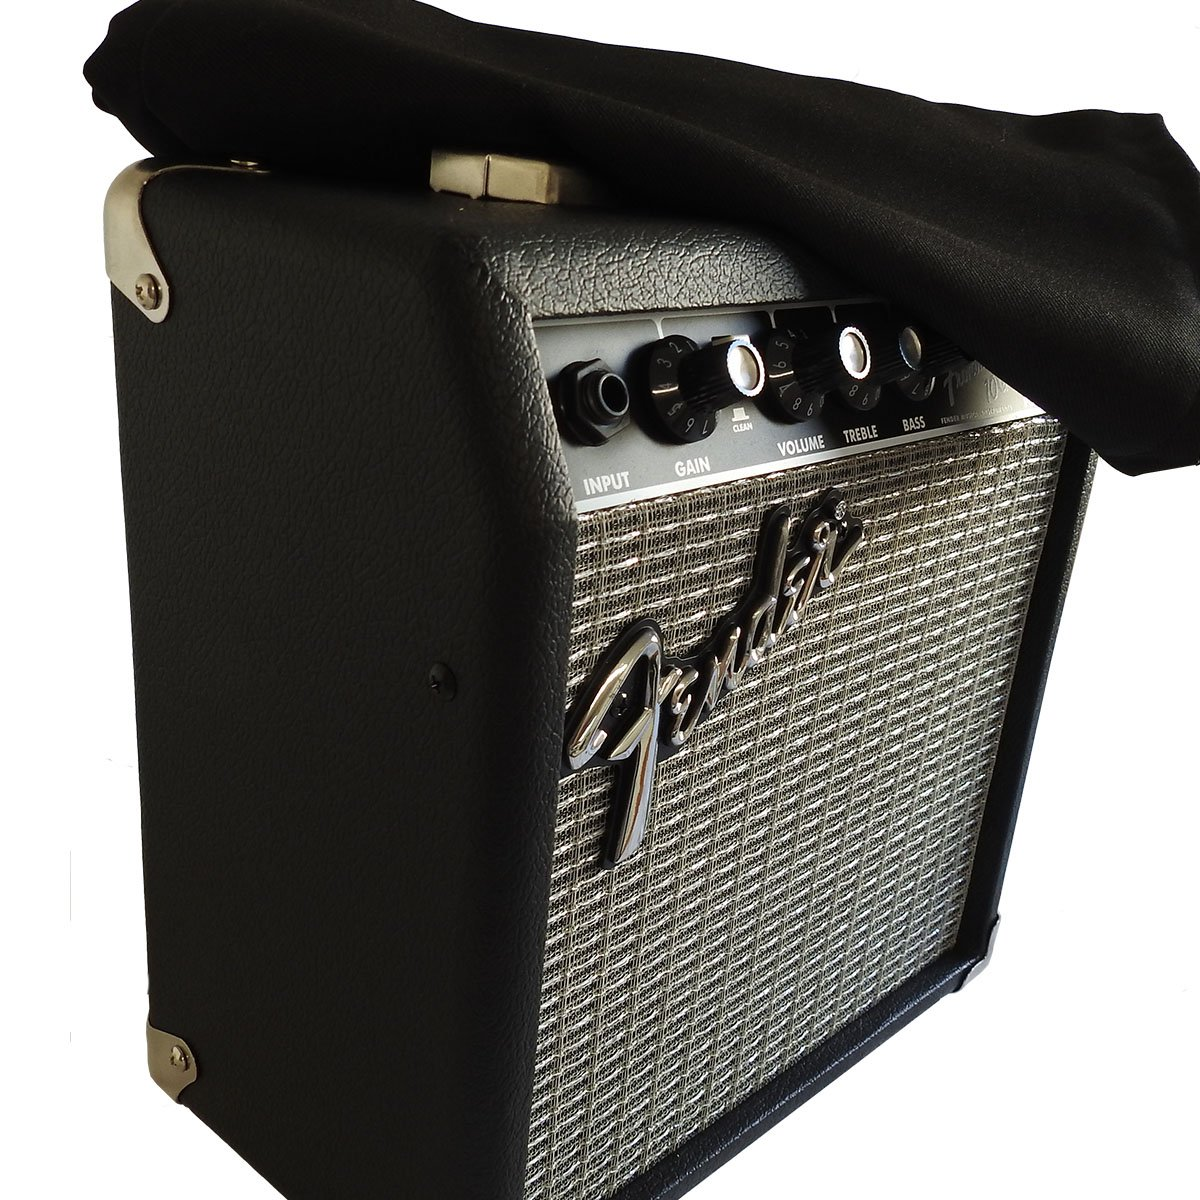 Roland KC-350 Guitar Amplifier Dust Covers by DCFY | Synthetic Leather Dust Covers For You Rol--KC-350-CHSL